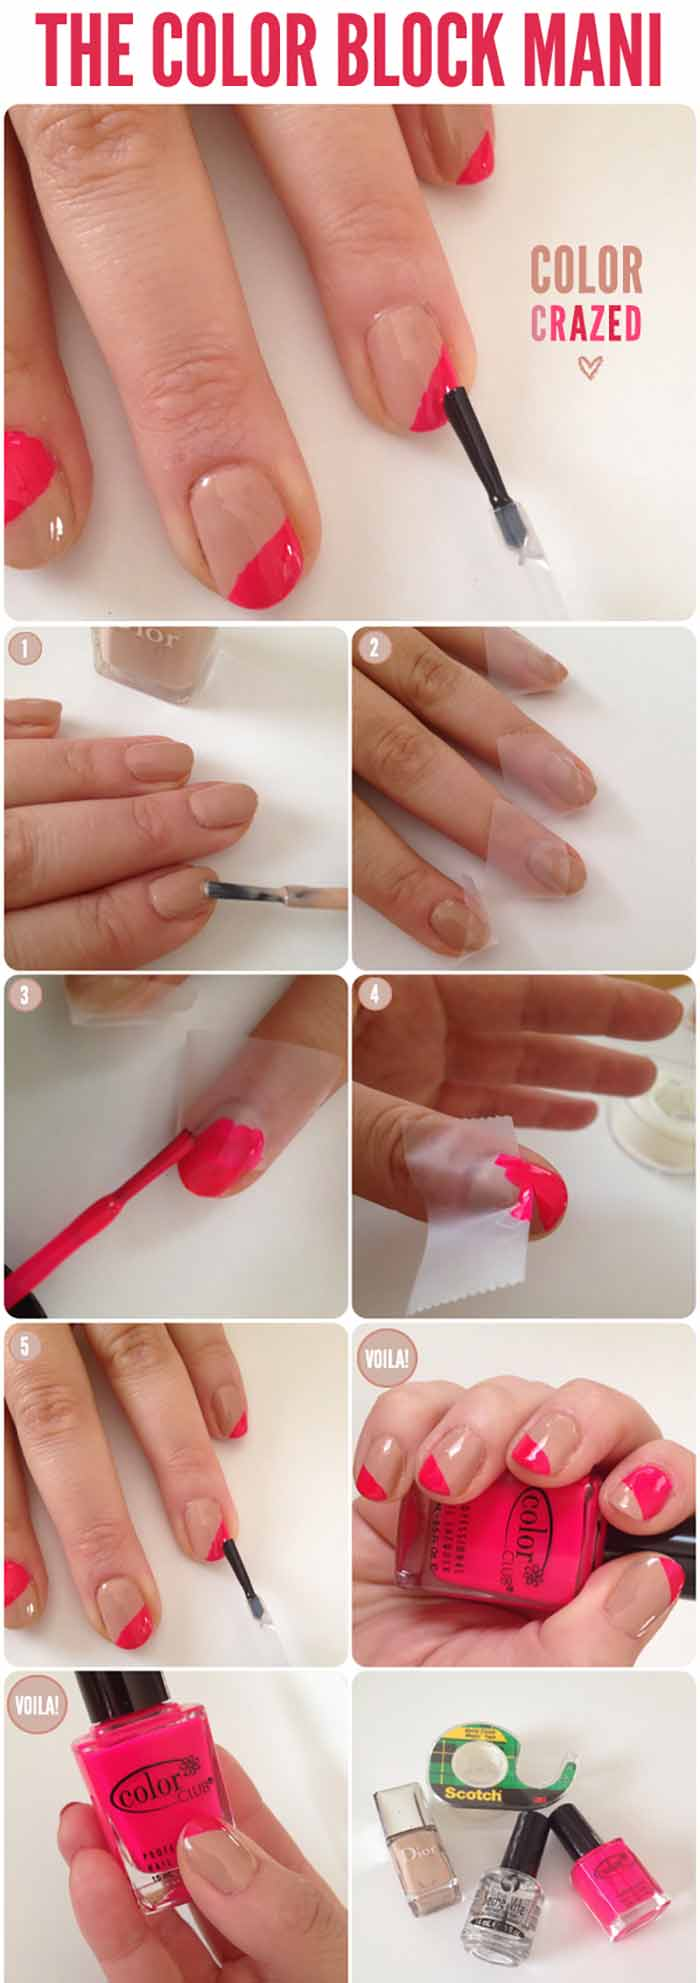 Color Block Nail Art Manicure for Short Nails